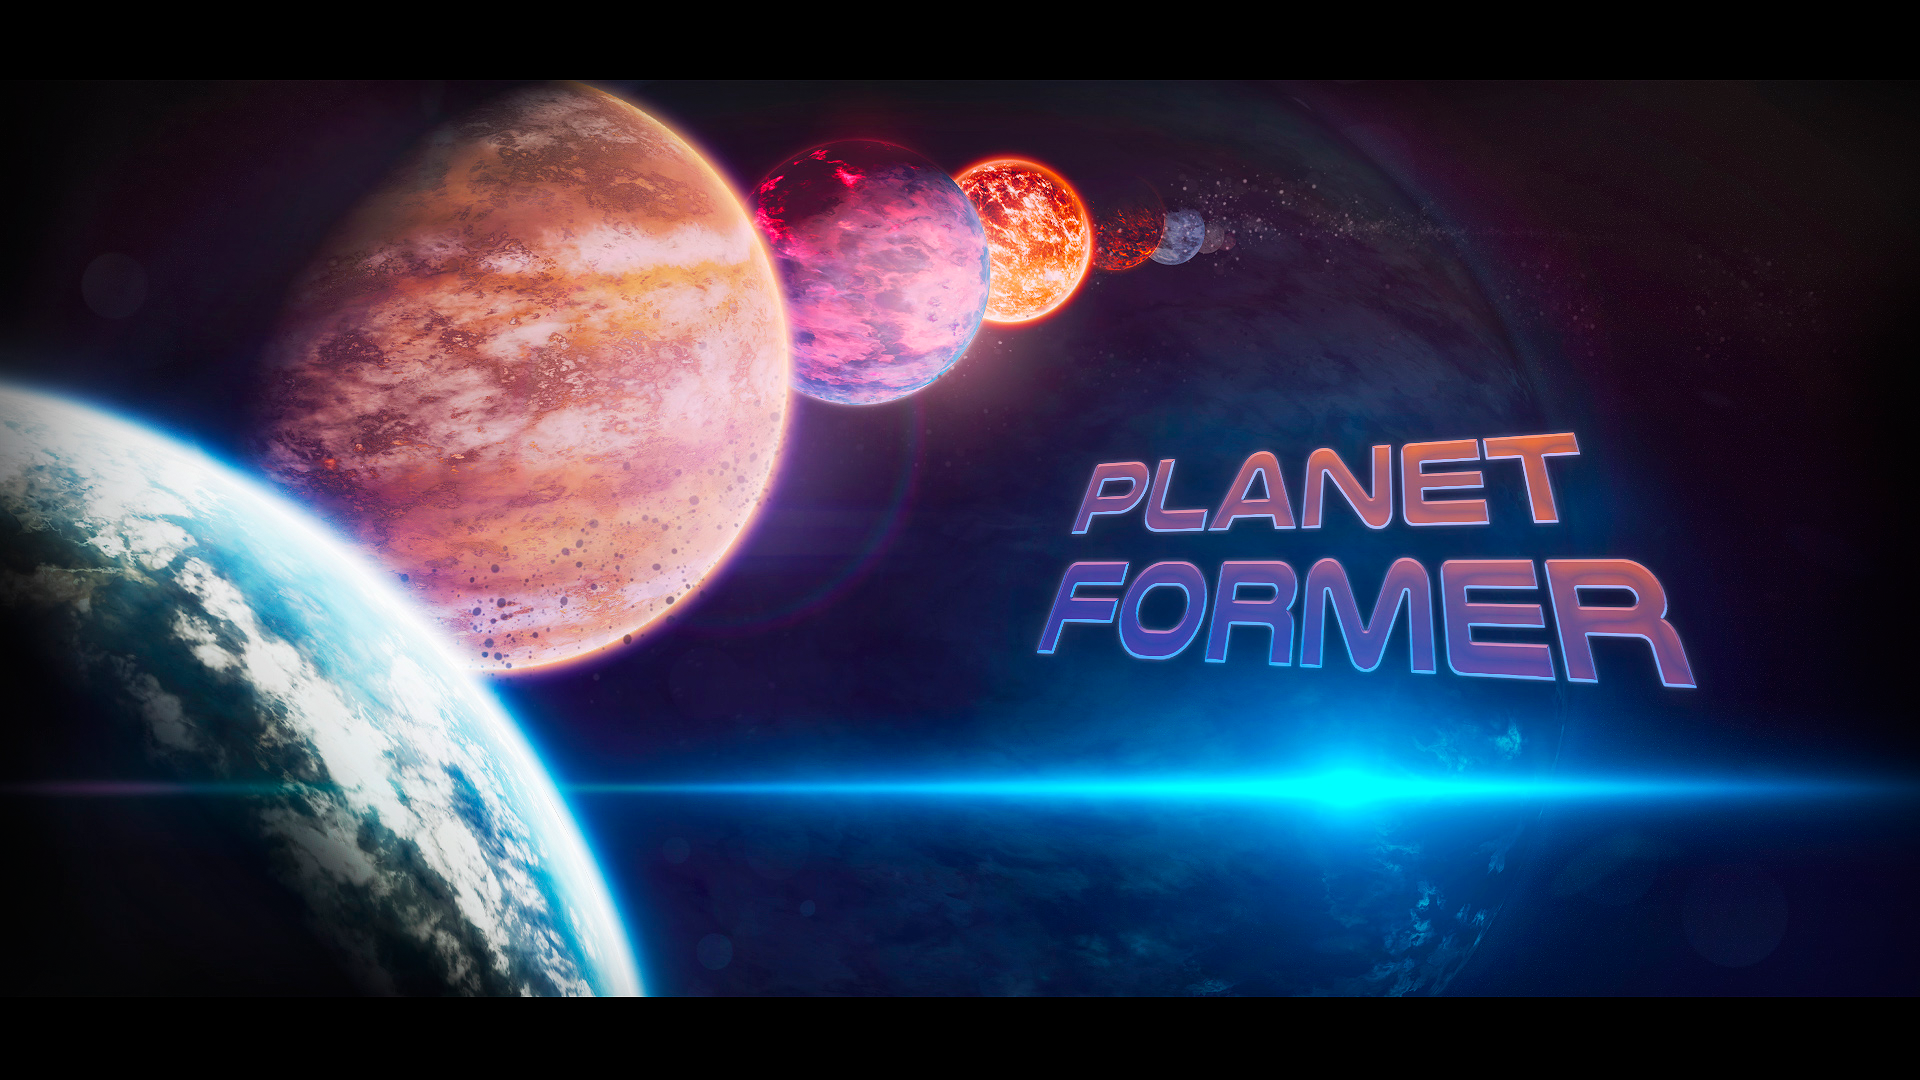 Planet Former by Octopus X